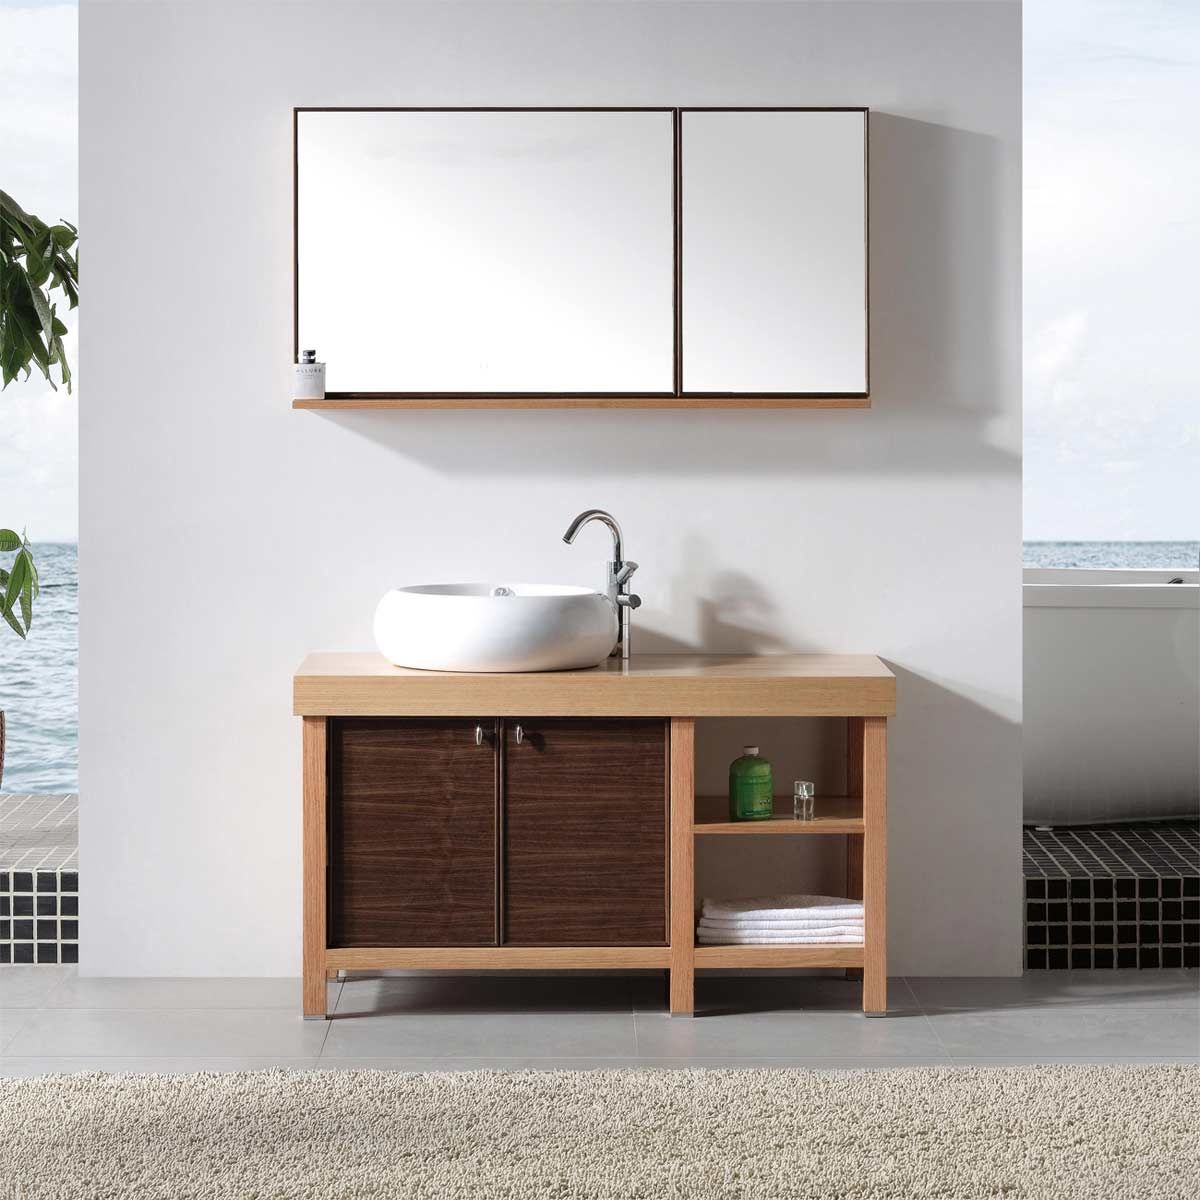 Interior Solid Wood Bathroom Cabinet 48 single bathroom vanity with vessel sink biella vm v14026 rok conceptbaths